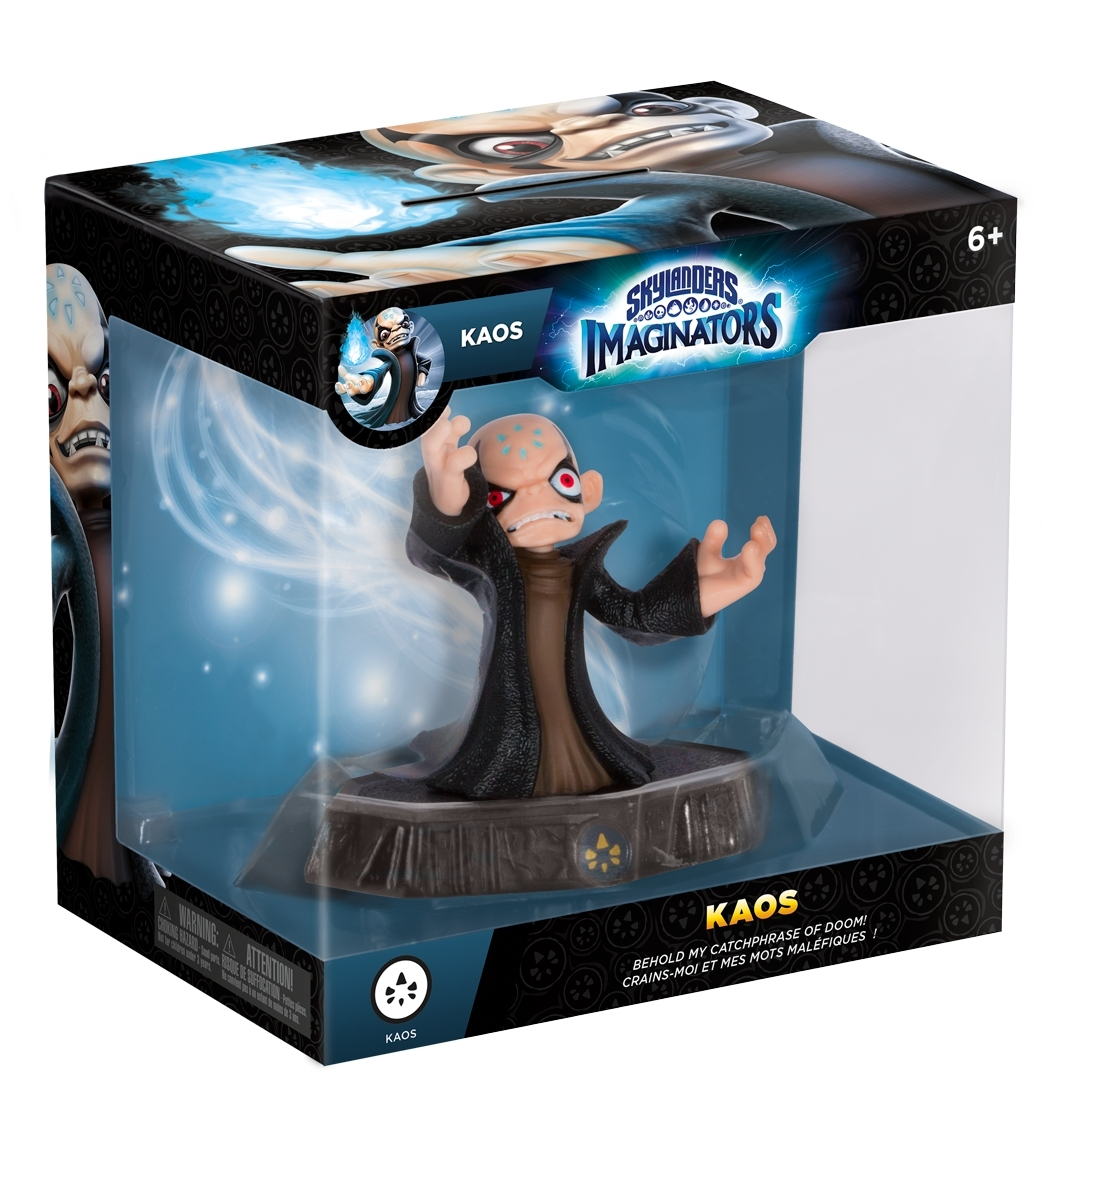 To celebrate the US launch of Skylanders Imaginators, fans will receive a free, fully-playable Kaos toy with purchase of a Starter Pack. Offer valid until Oct. 22. While supplies last. (Photo: Business Wire)